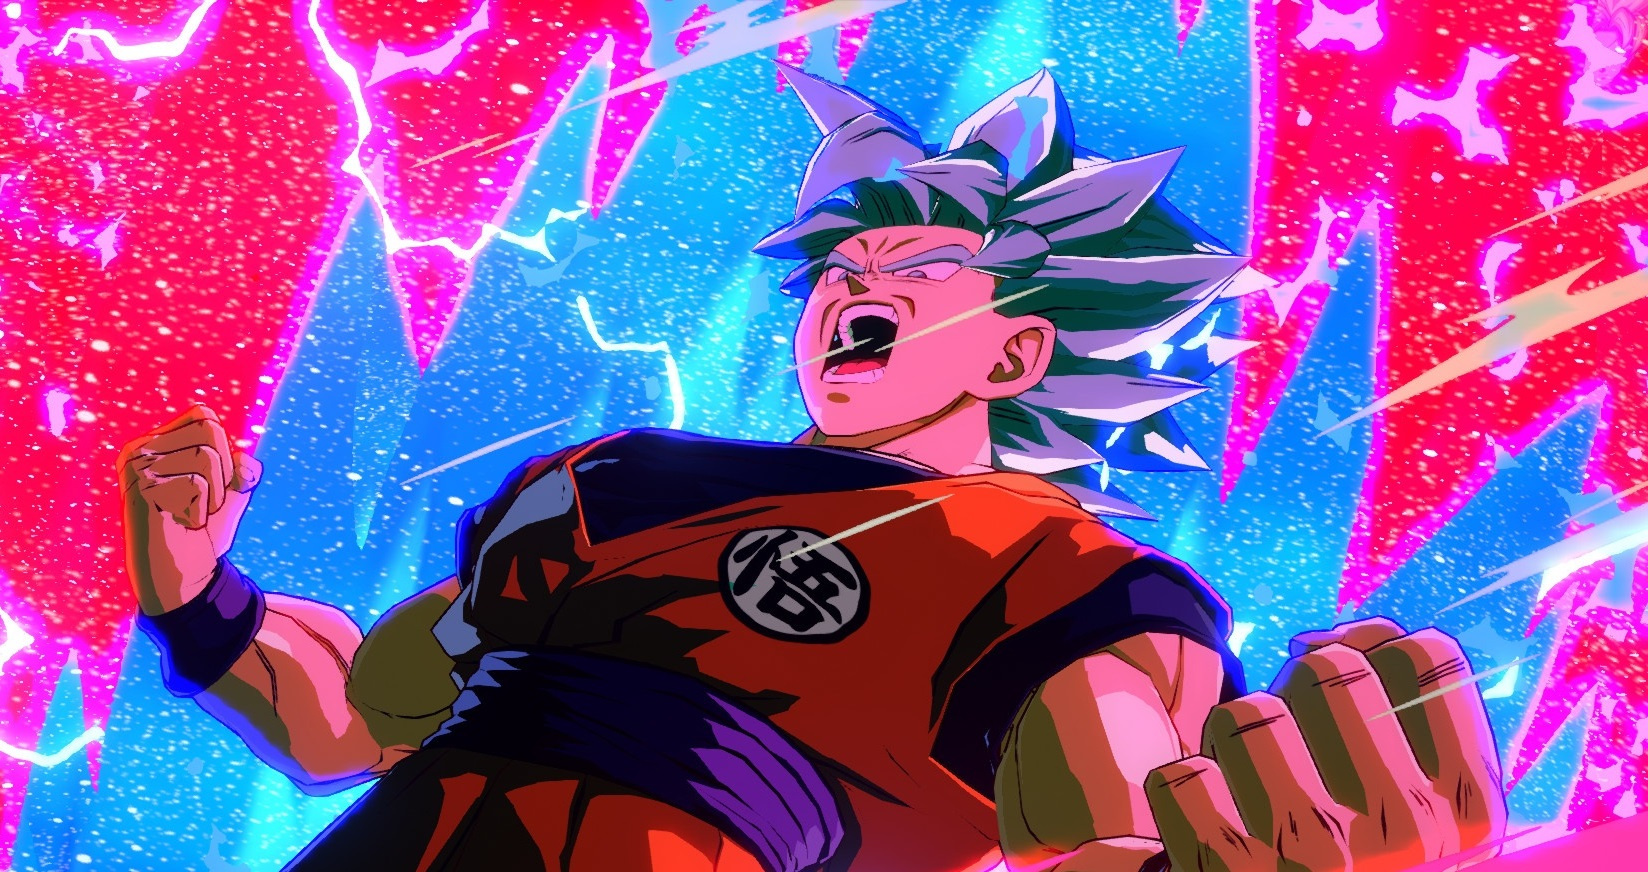 A Warrior from Universe 11 Teased for Dragon Ball FighterZ